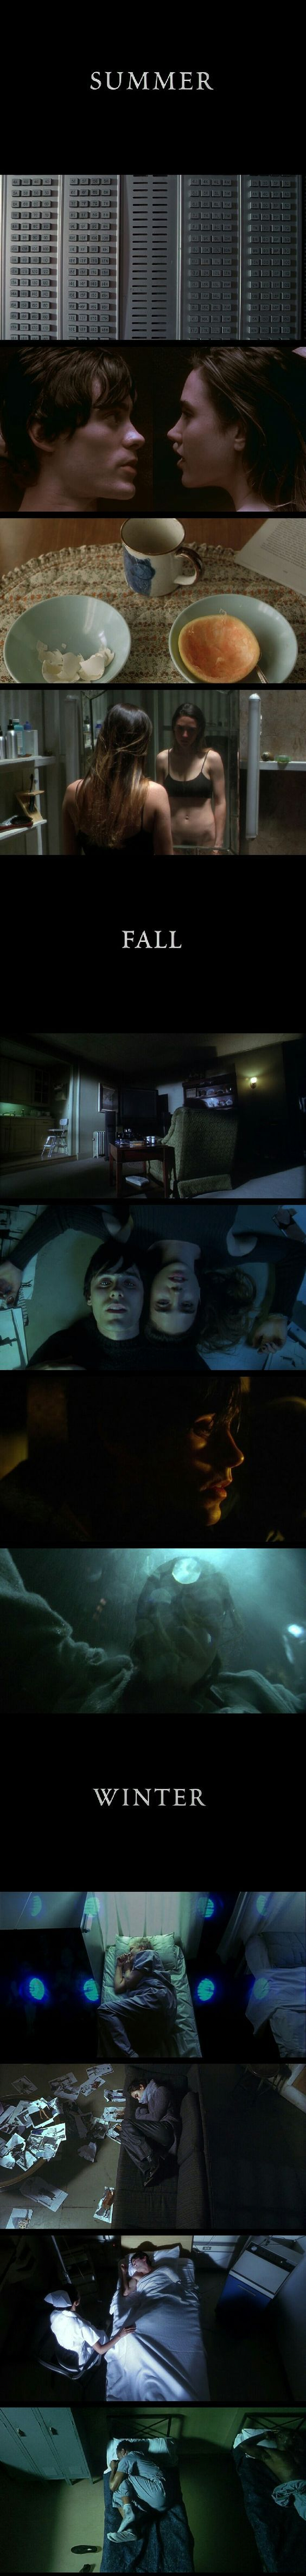 Requiem for a dream double sided